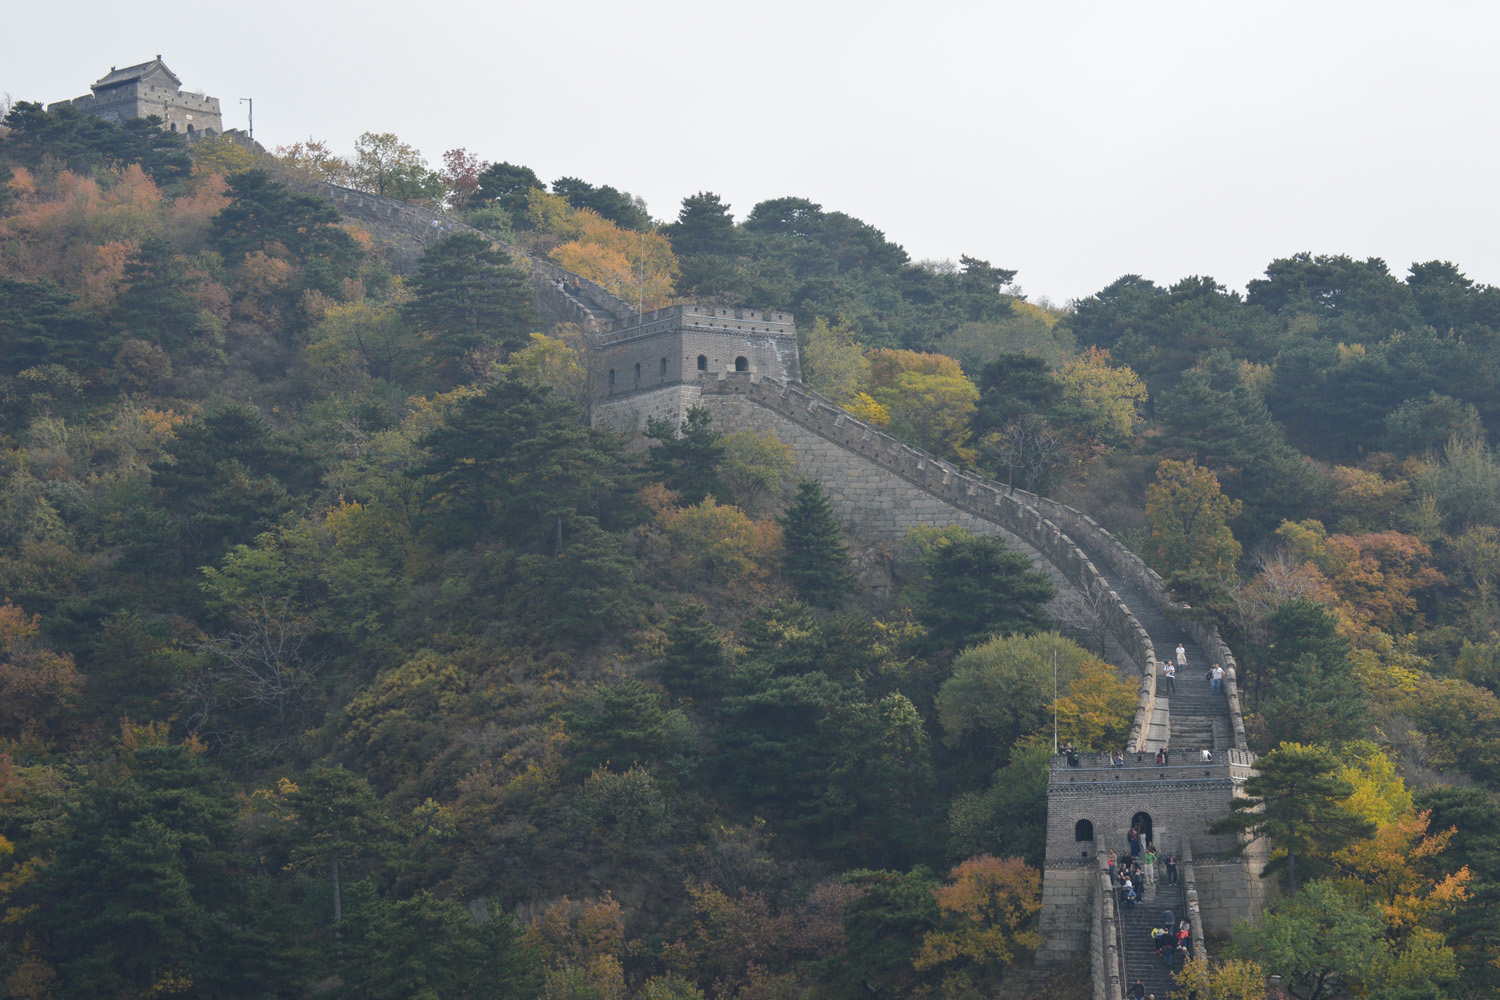 Climbing the Great Wall of China